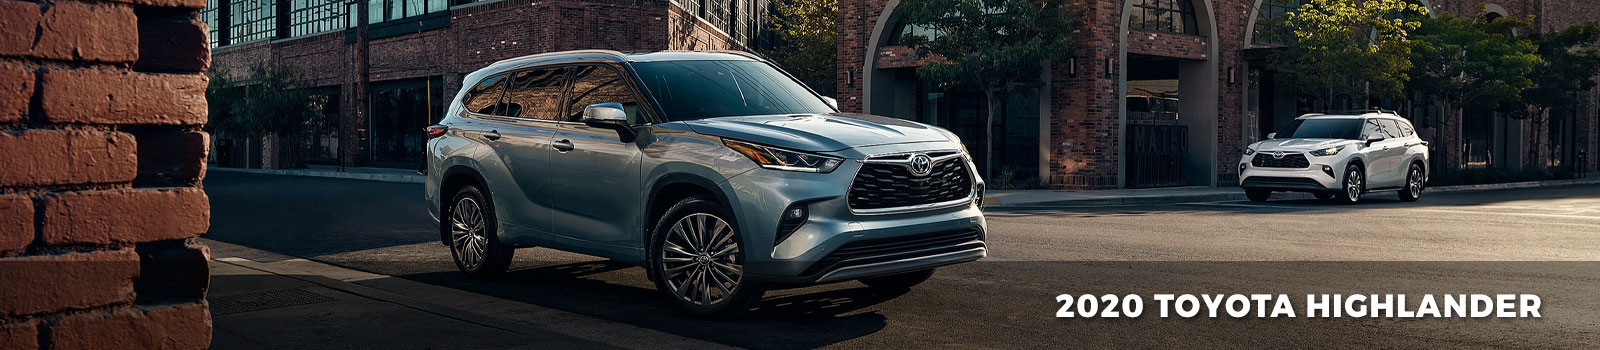 2020 Toyota Highlander SUV Models For Sale In Tifton, Georgia